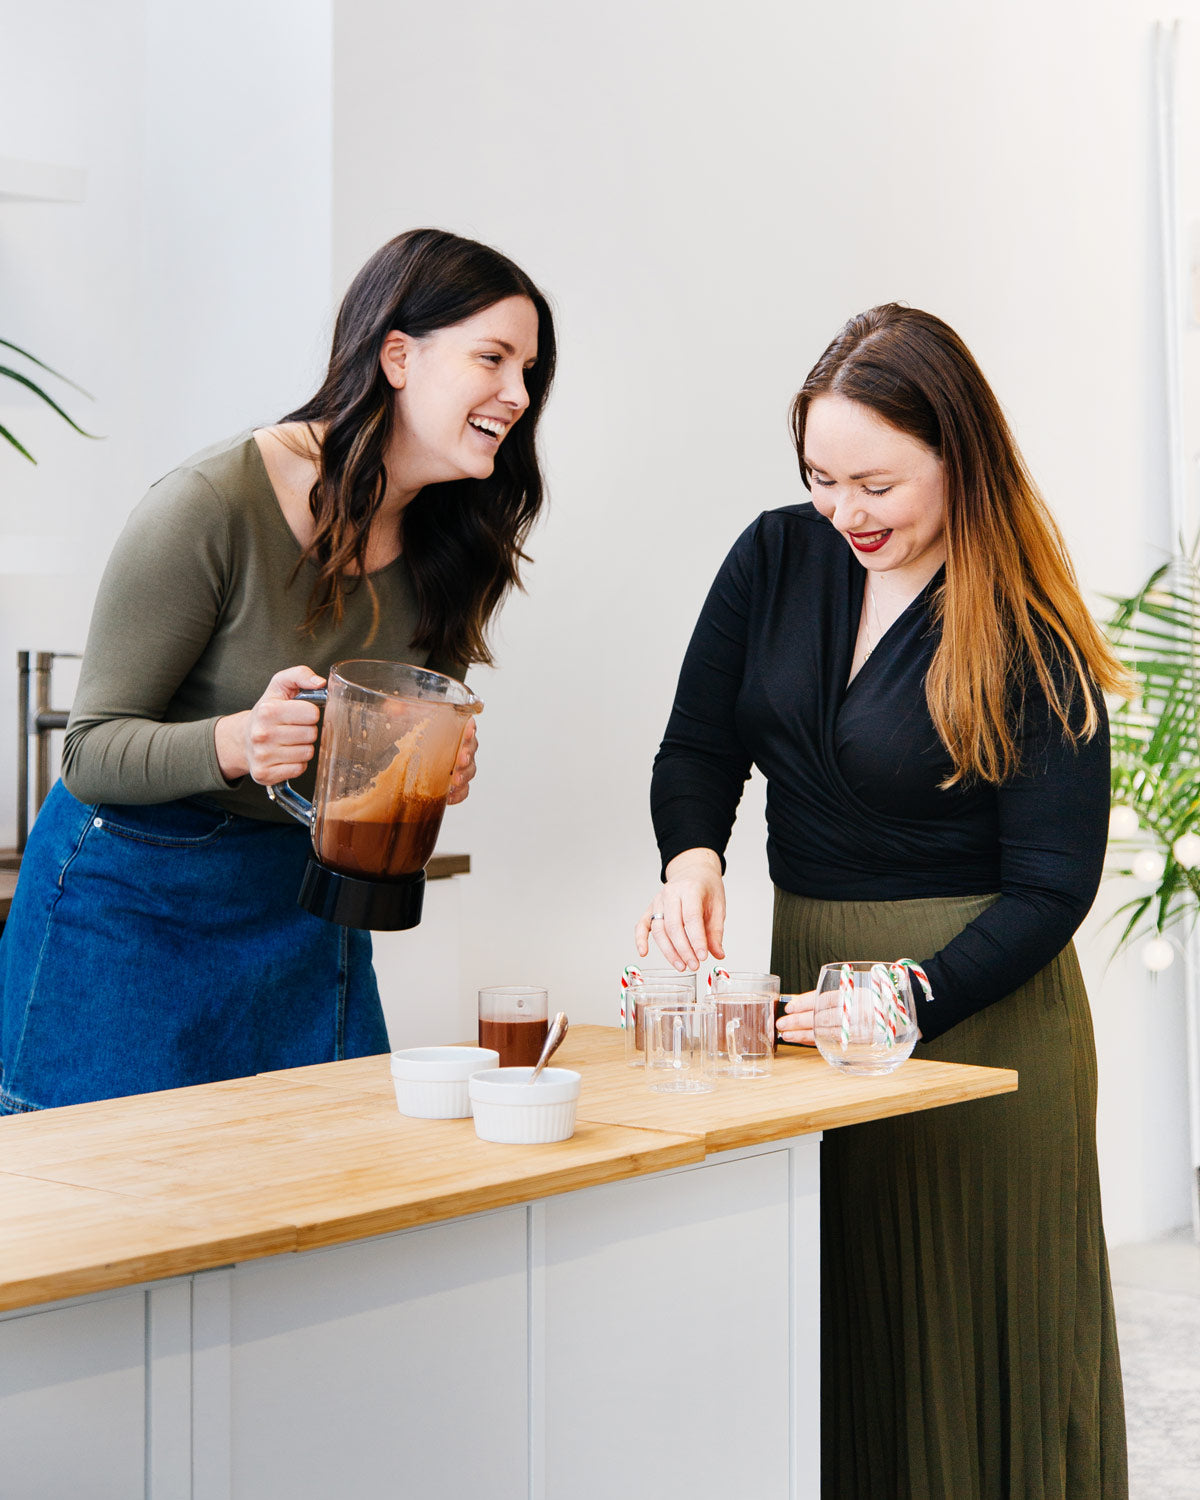 edc680f57 L- Kendra is wearing the Essential Long Sleeve Top in Olive with a denim  wrap around skirt, and black tights. R- Ashley is wearing the Everyday  Twist Top in ...